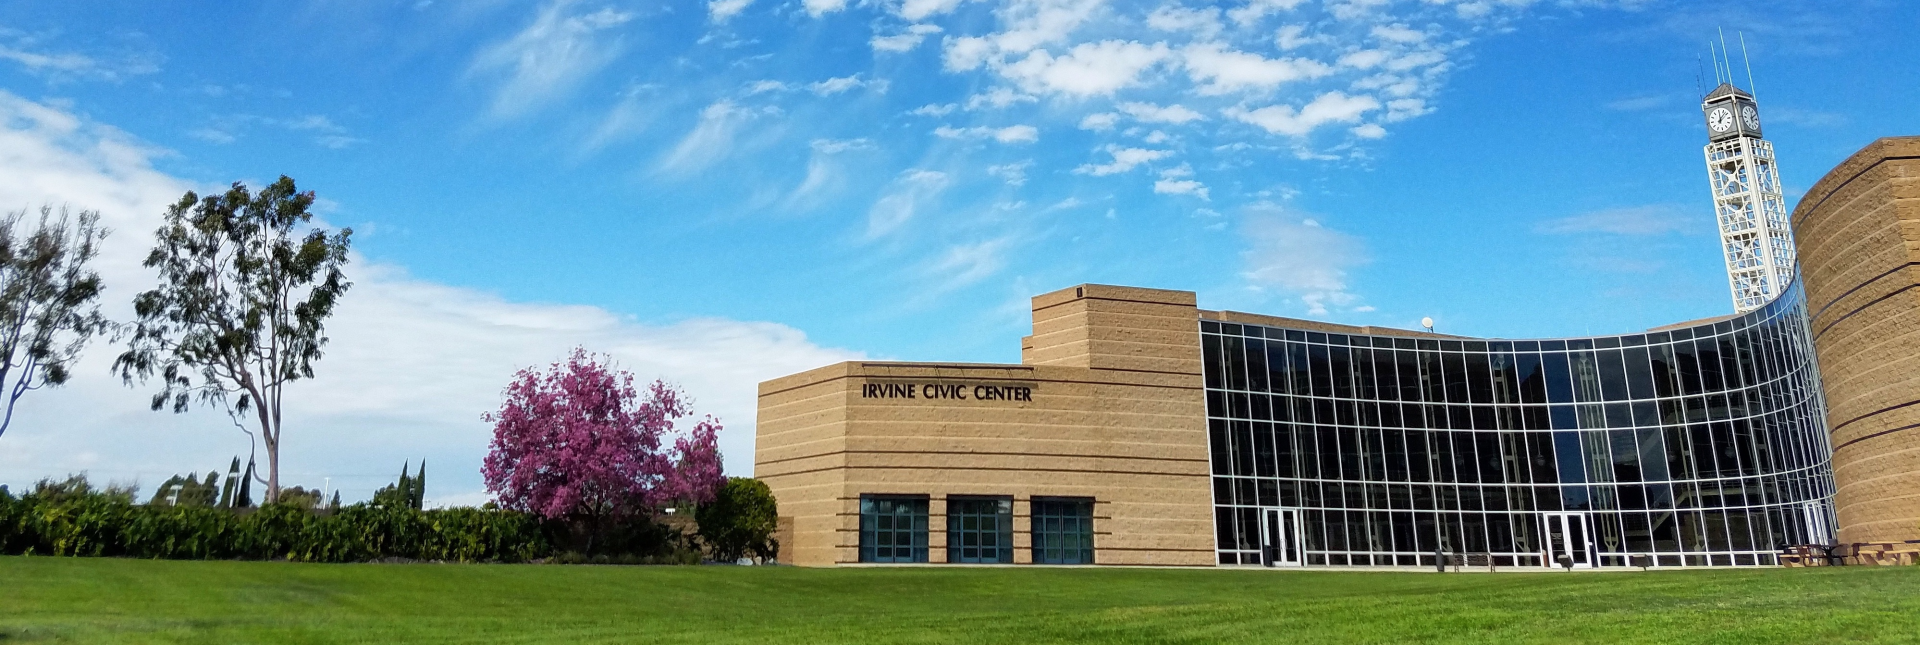 Part-time Community Services Leader III - Civic Center Events and Facility Support